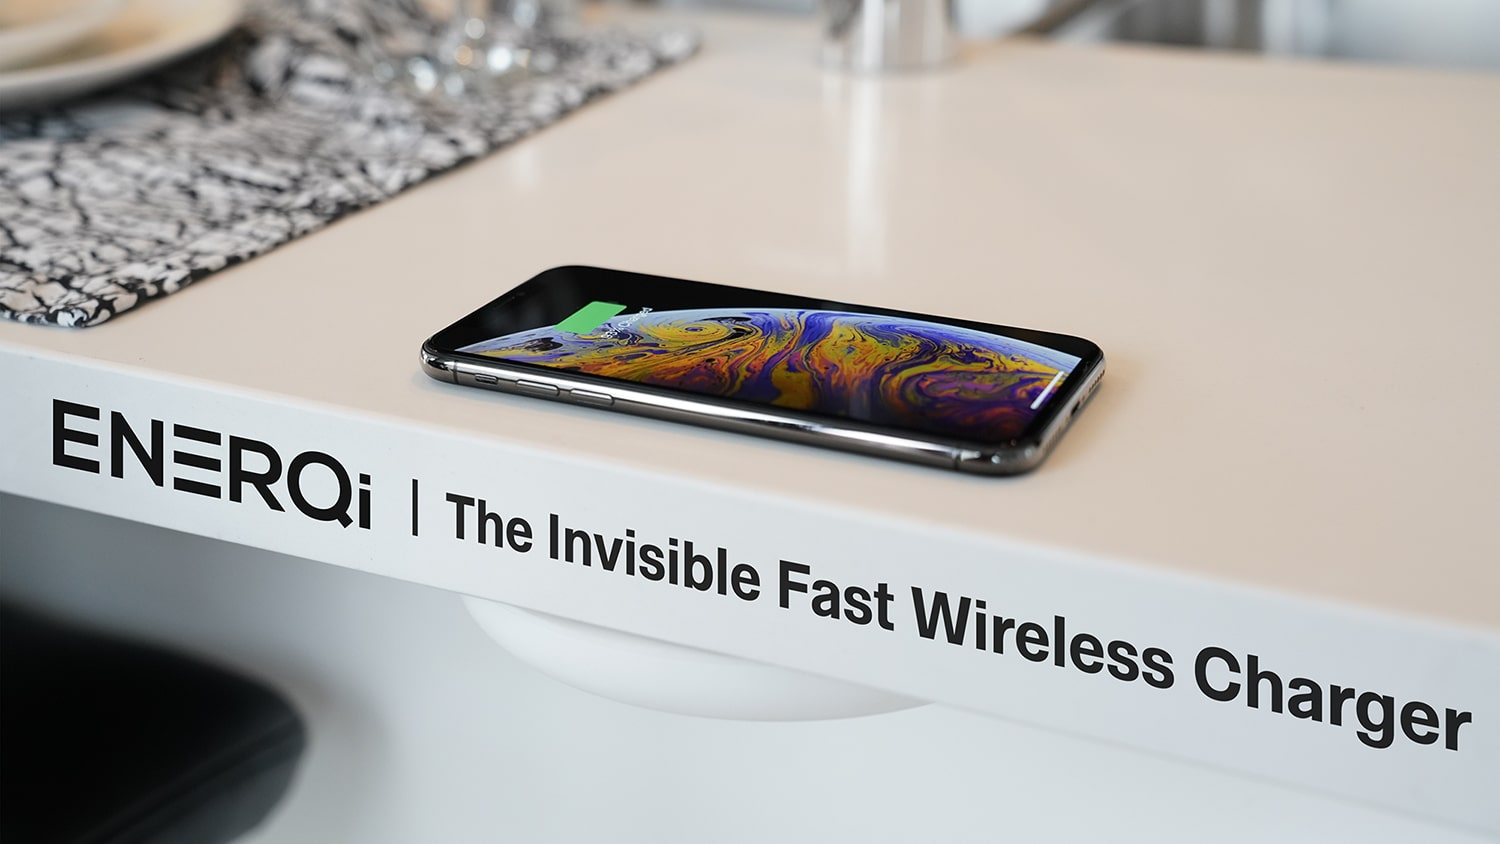 ENERQi Wireless-Charger 2